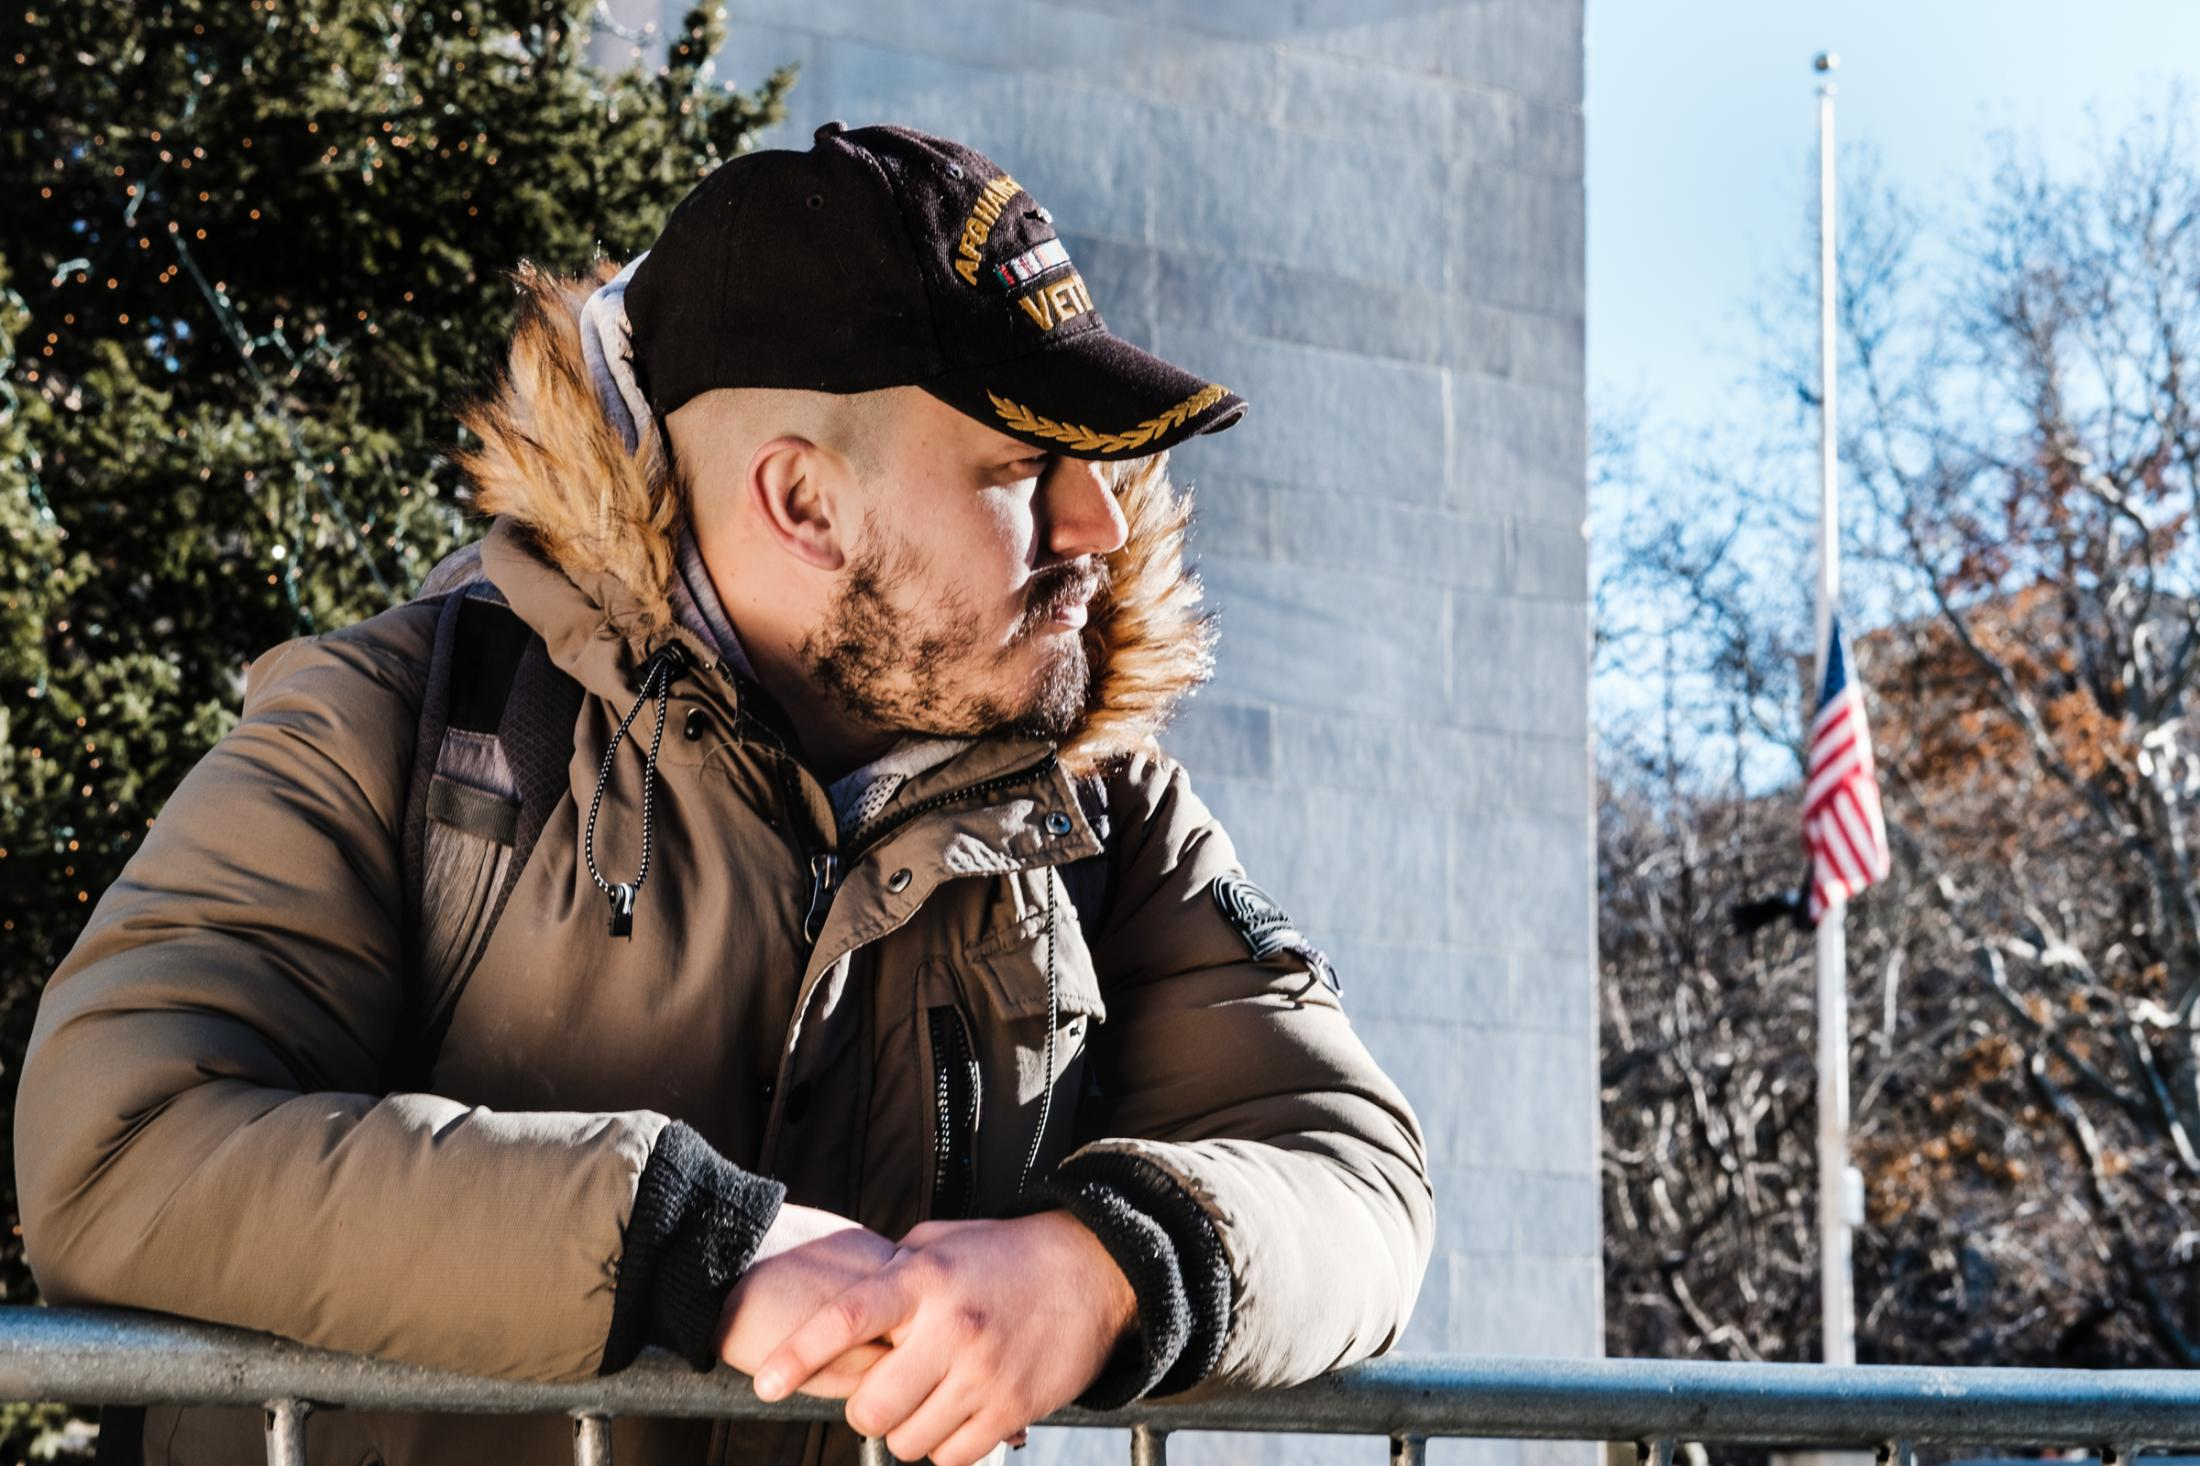 "Washington Square Park, New York University, NY. December 7, 2018. ""I received direct and indirect enemy contact while on foot patrol and reacted in order to deter the threat. What serving means to me is the courage to confront my fears."" James reflects on his time in the service."